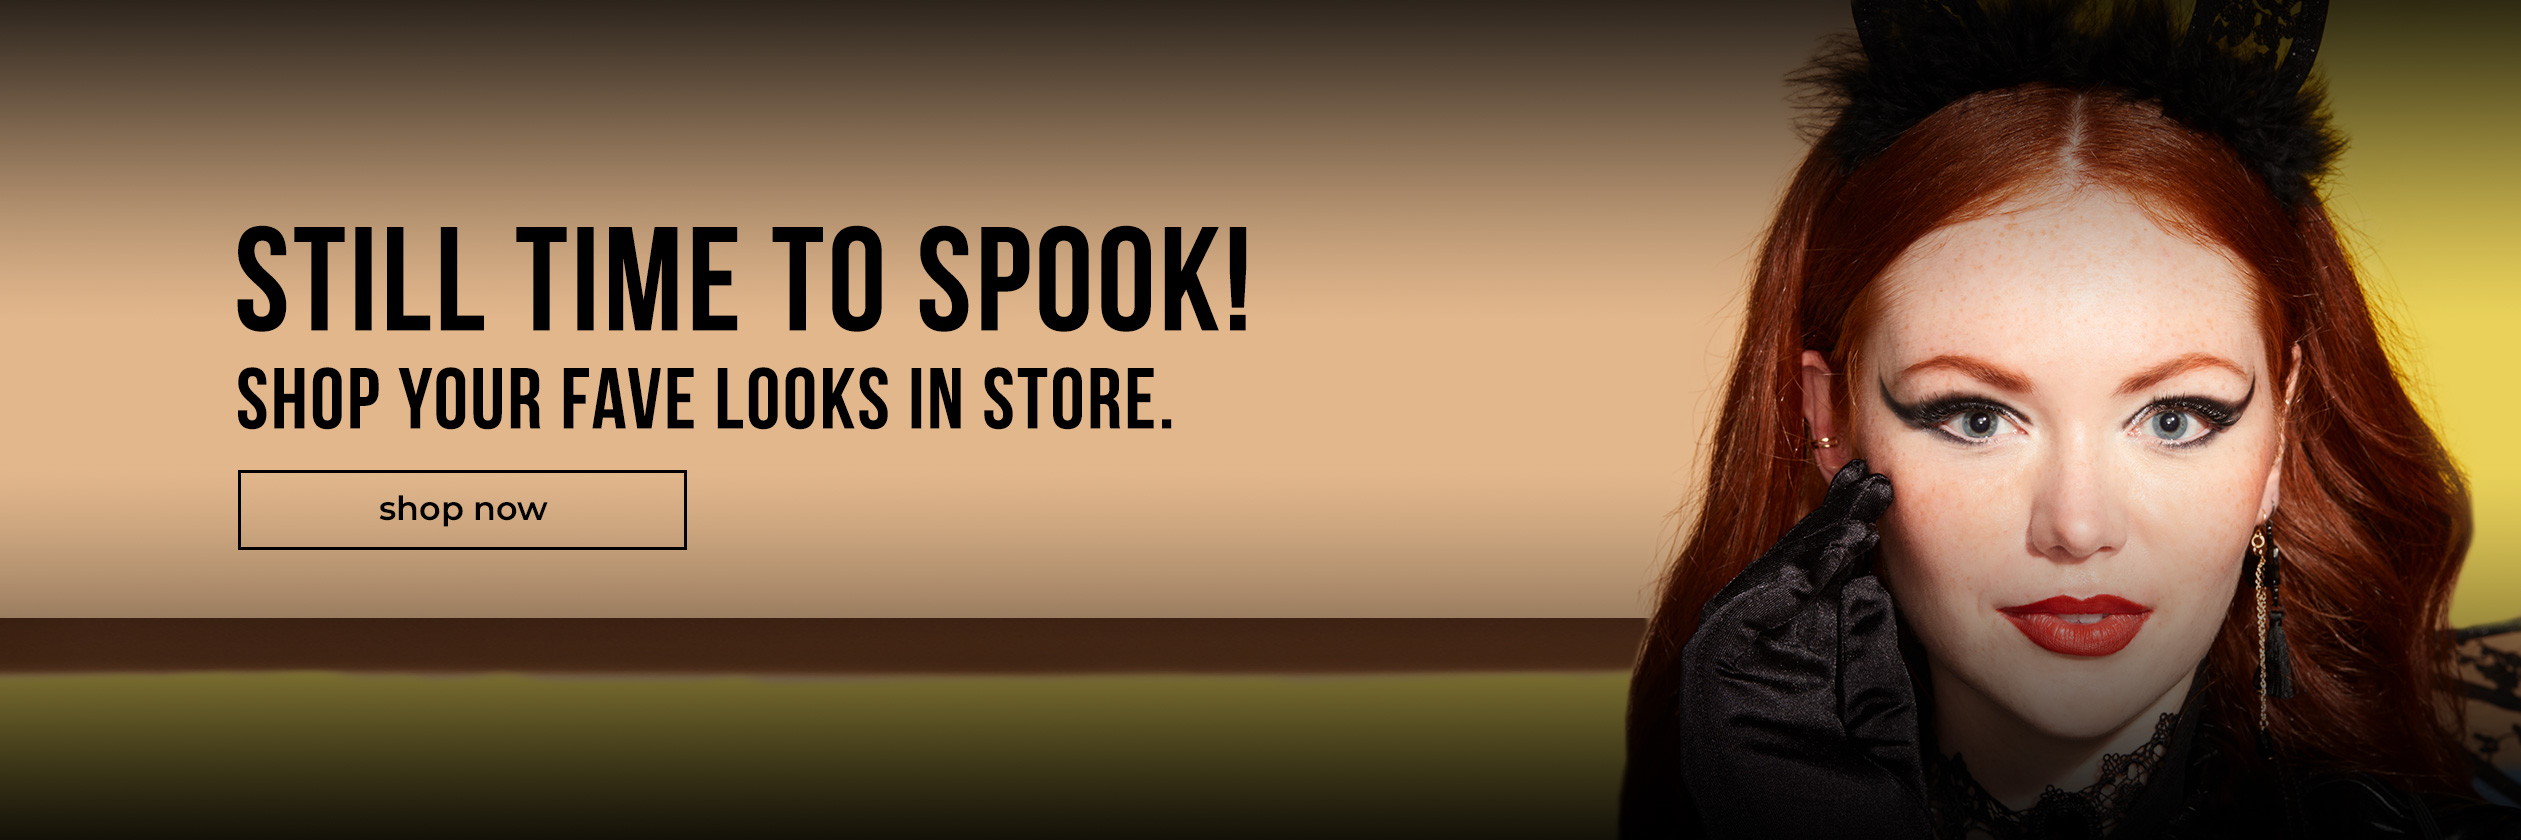 Still time to spook! Shop in-store to find your fave looks.